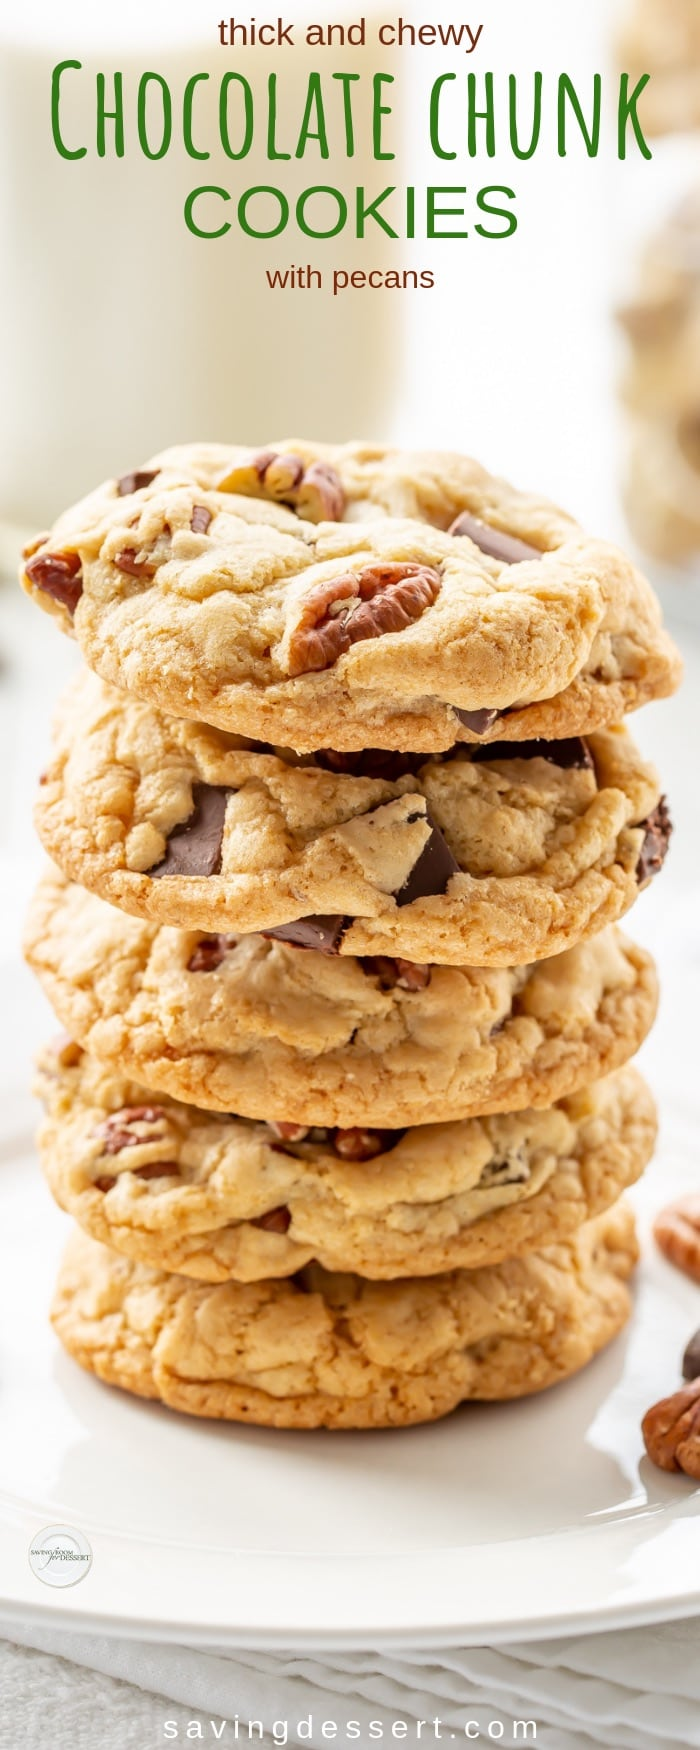 Thick and Chewy Chocolate Chunk Cookies with Pecans - our new favorite cookie recipe! These delicious jumbo-sized cookies rival any you might find in a gourmet bake shop. #savingroomfordessert #cookies #chocolatechunk #chocolatechunkcookies #chocolatepecancookies #thickandchewycookies #baking #cookie #chocolatechipcookie